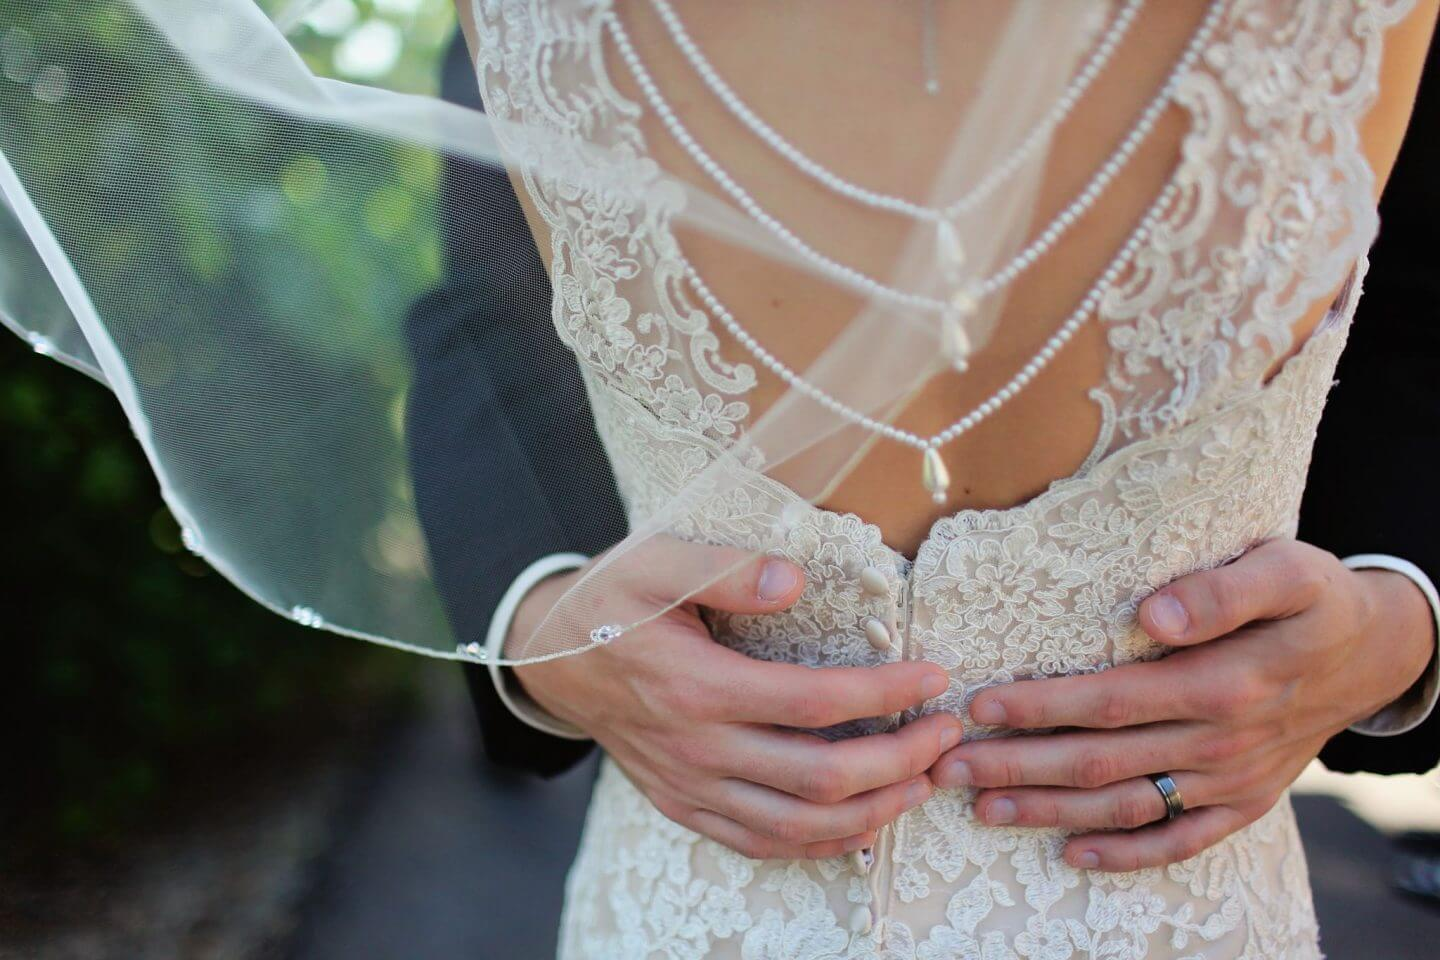 back of wedding dress with wedding ring